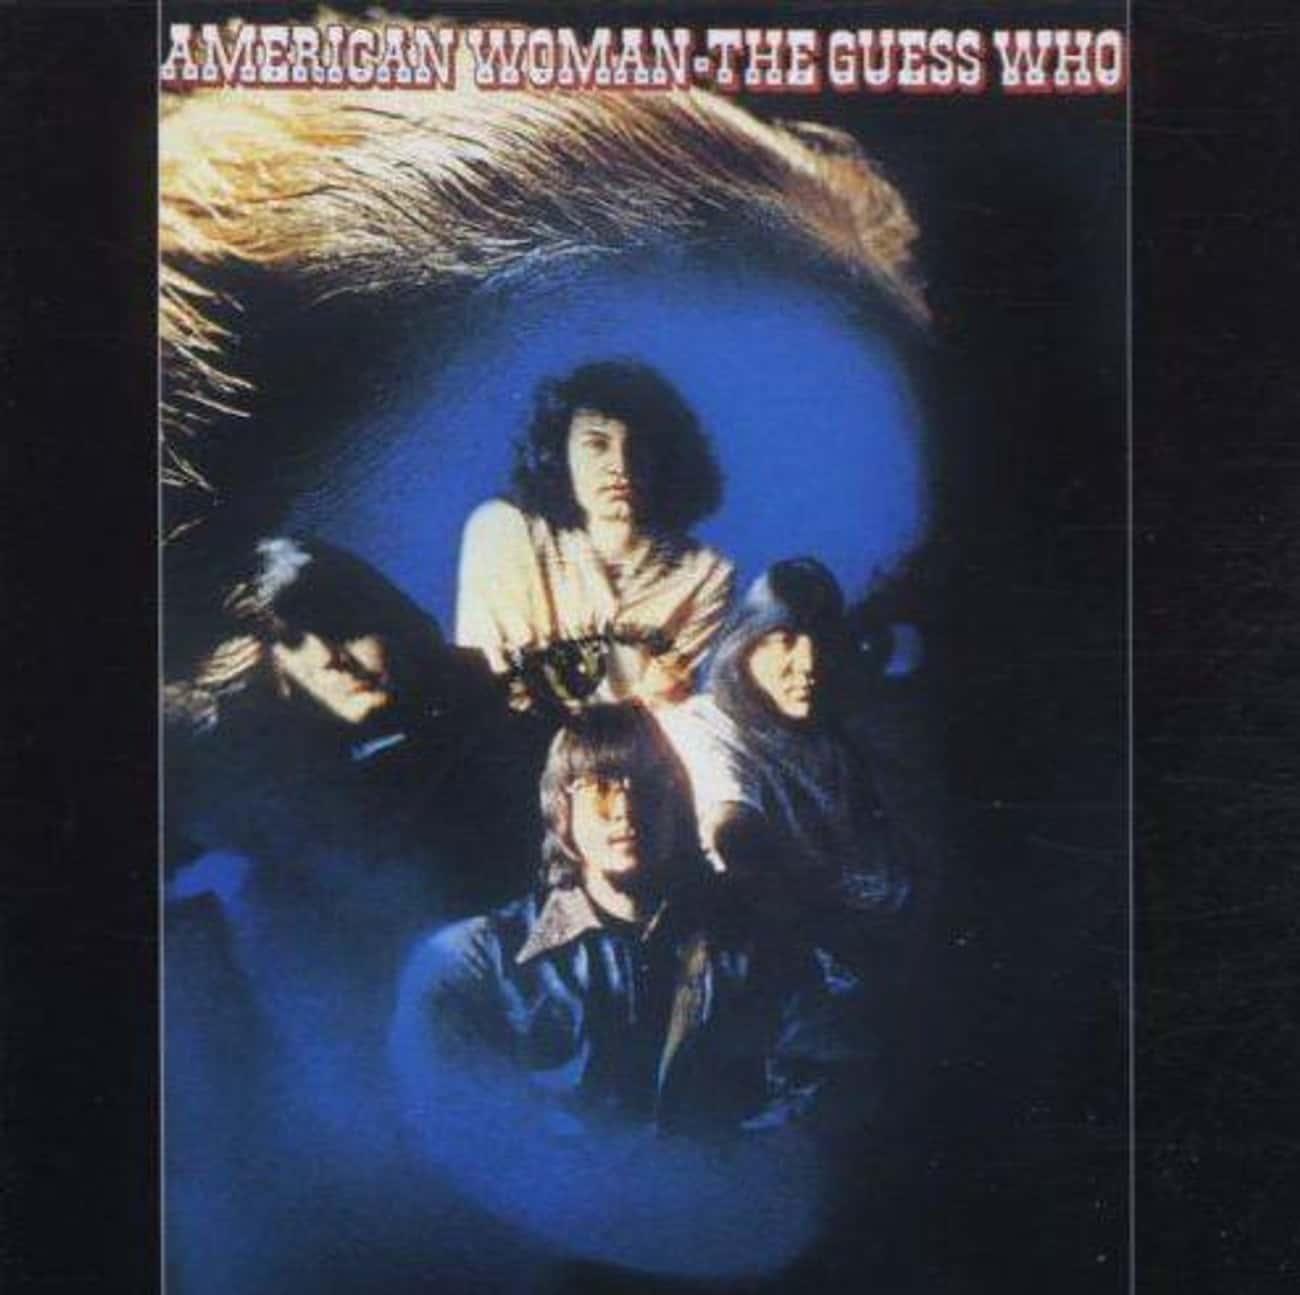 American Woman is listed (or ranked) 2 on the list The Best Guess Who Albums of All Time